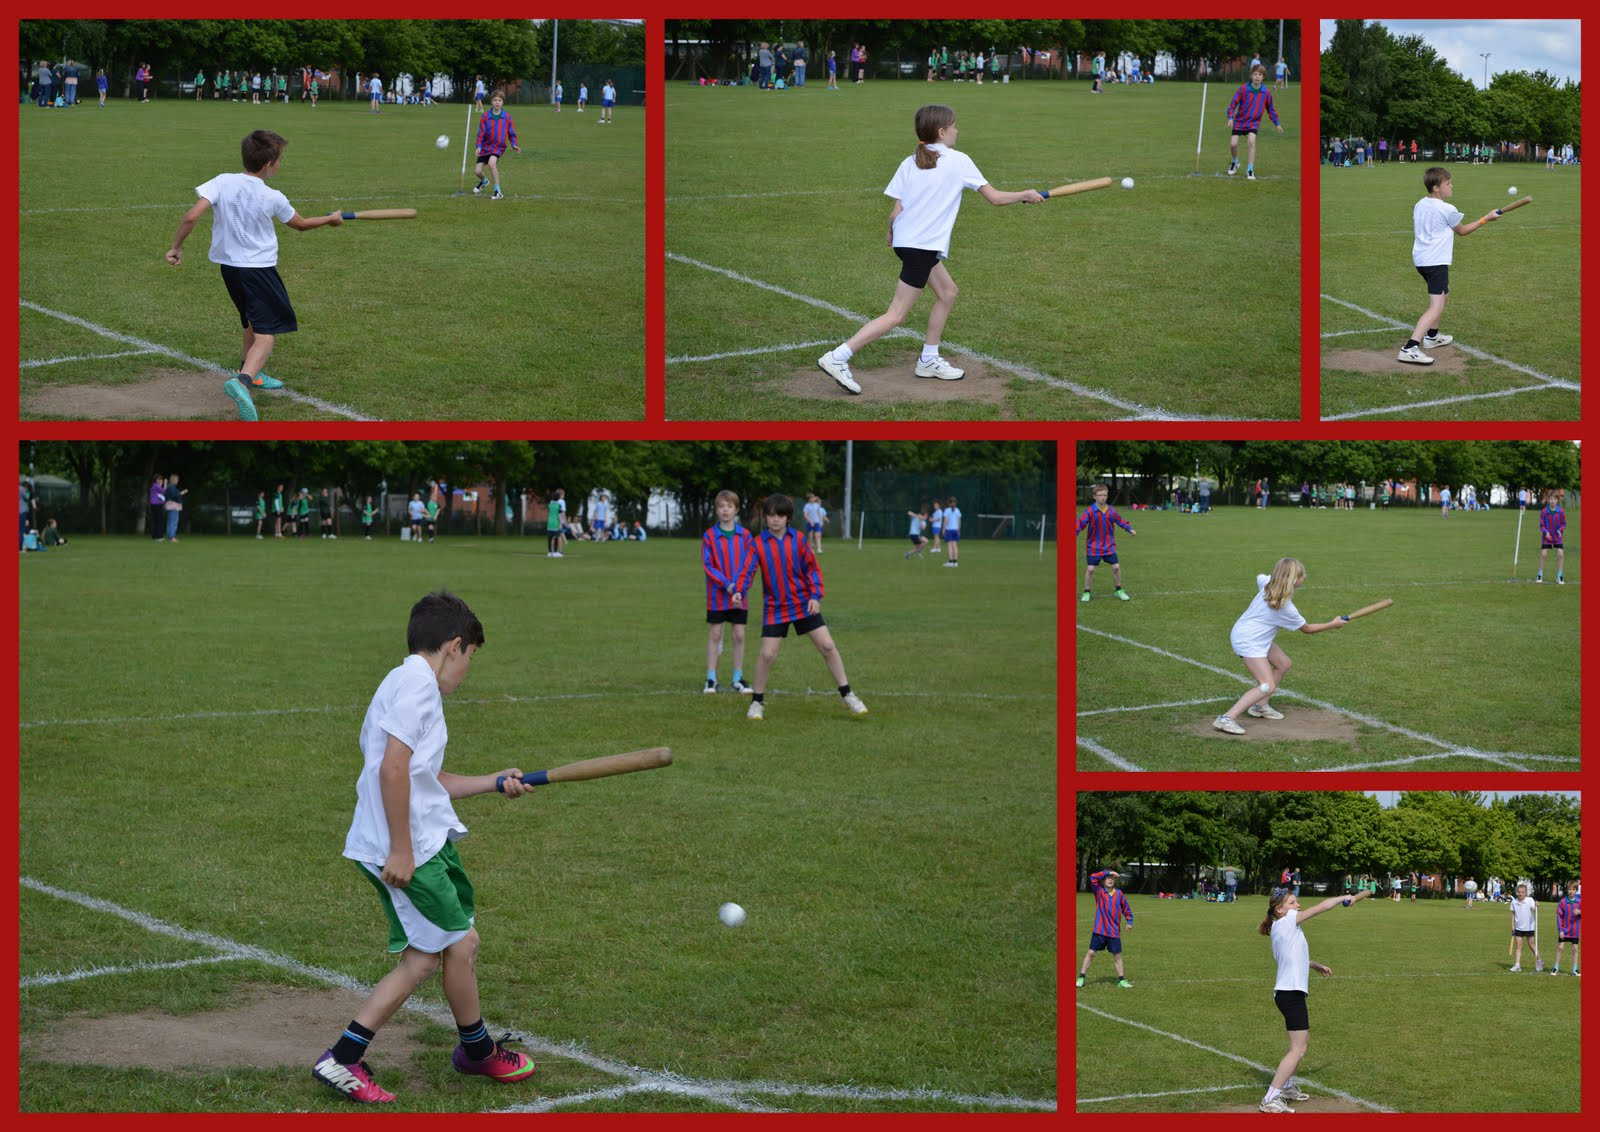 Rounders game